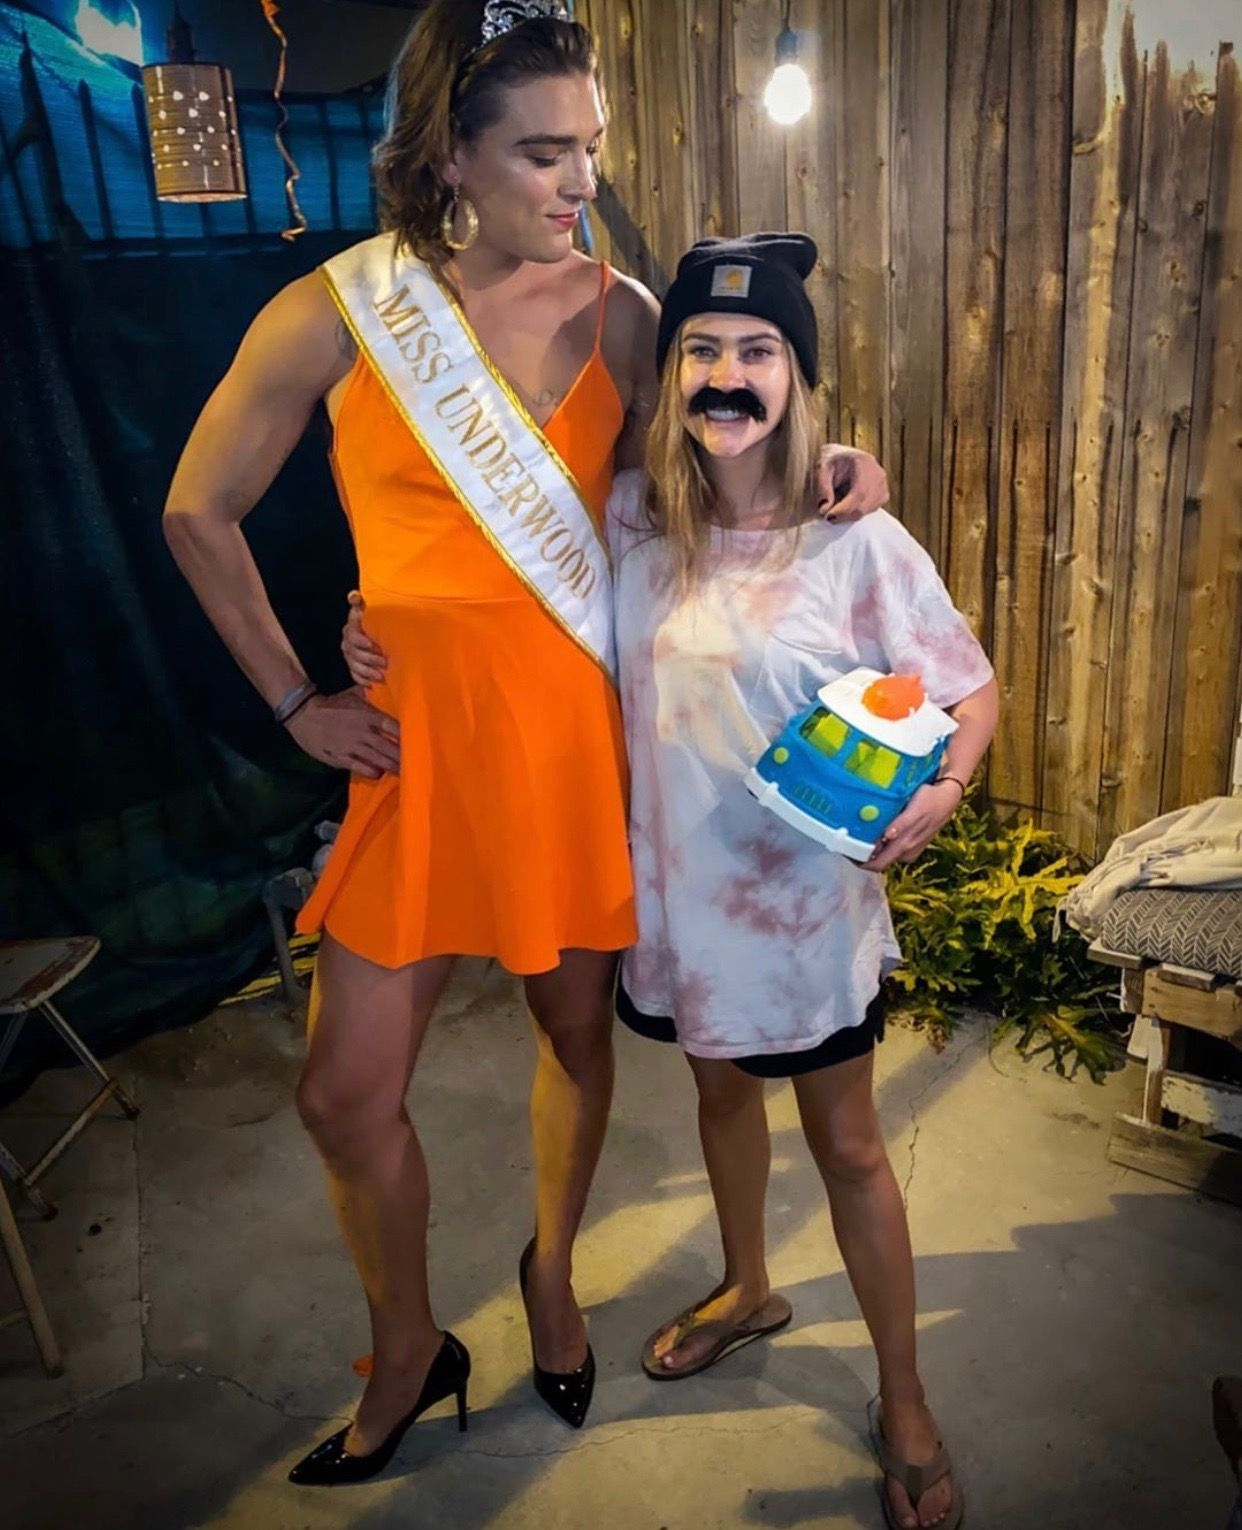 Caelynn Miller-Keyes and Dean Unglert Dressed as Each Other for Halloween and It's...Something!